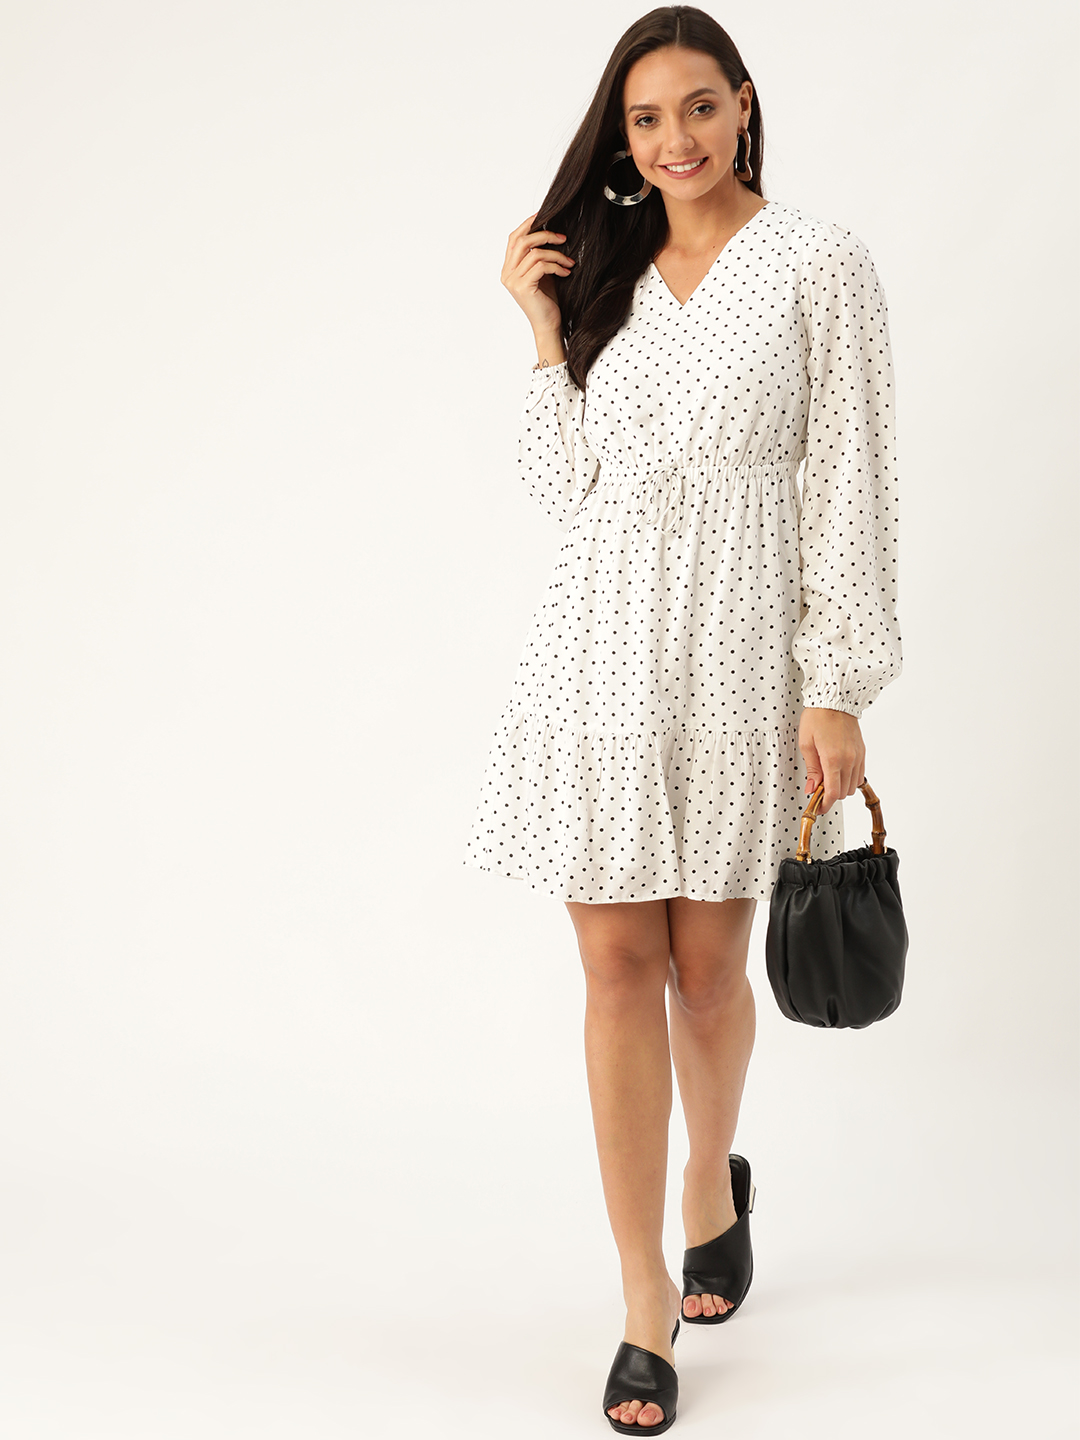 Dresses-Simply Elegant Polka Dot Dress2